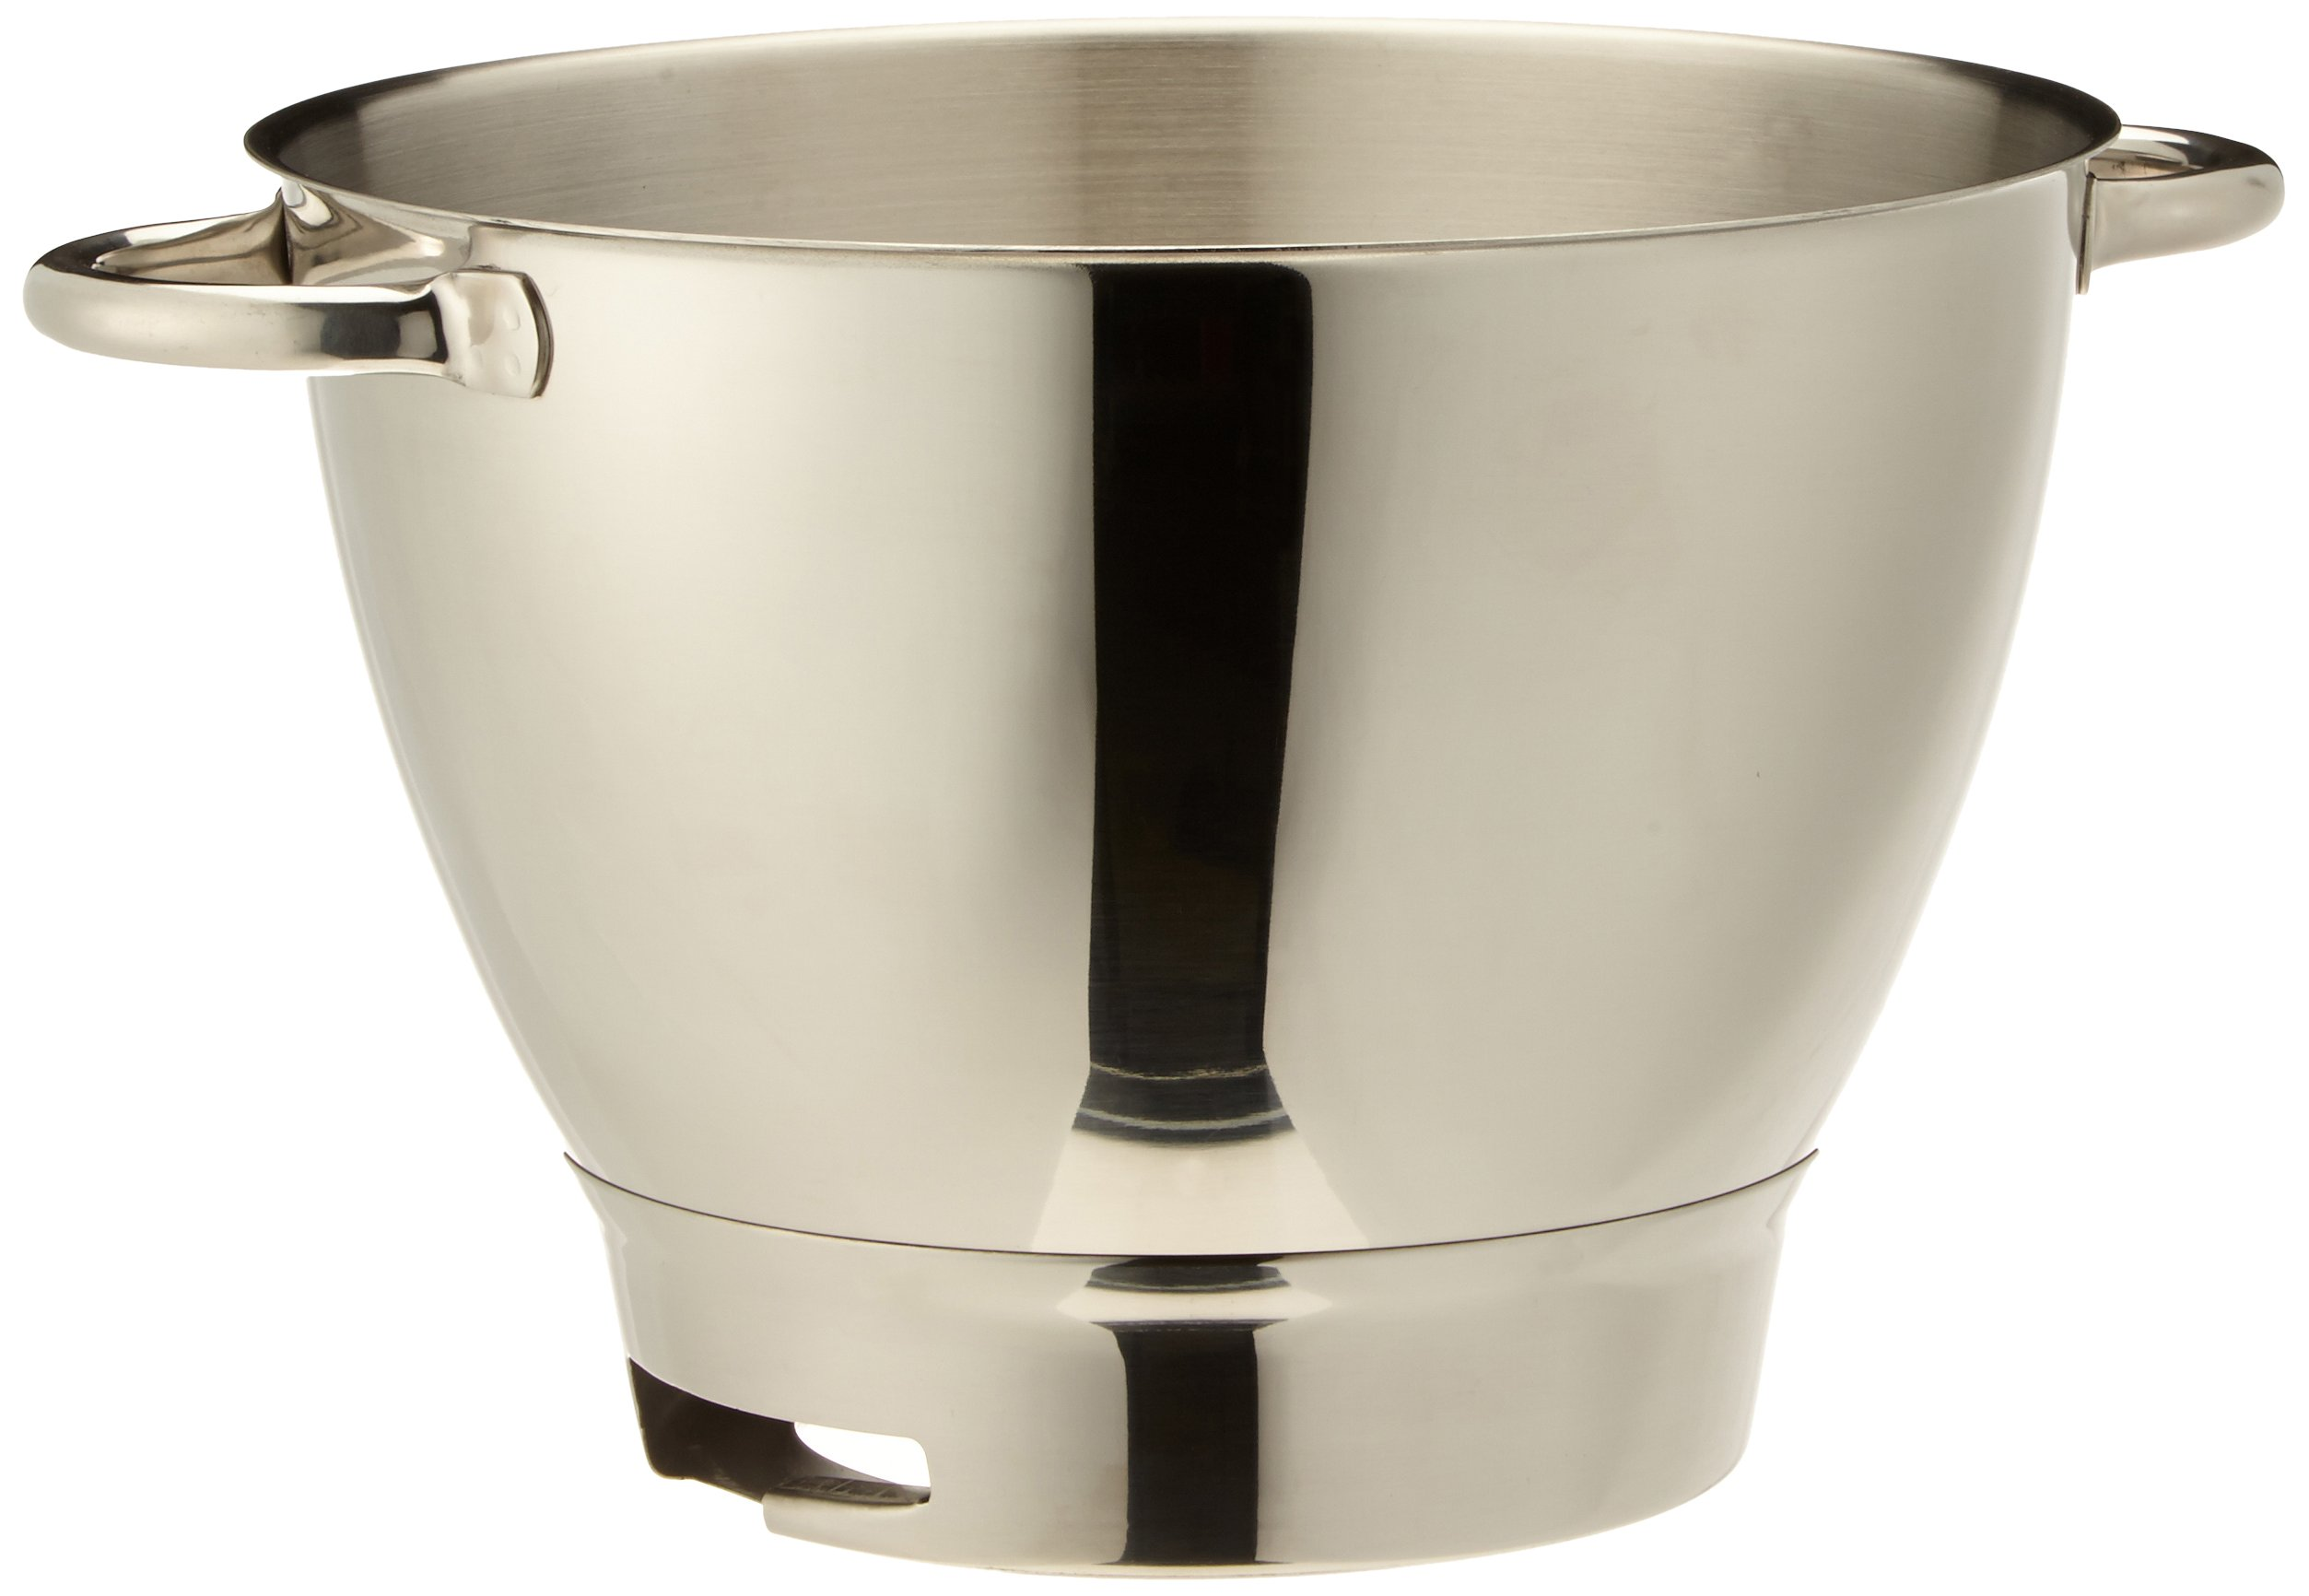 Kenwood 36385, Attachment Chef Stainless Steel Bowl with Handles, OVERSEAS USE ONLY, WILL NOT WORK IN THE US